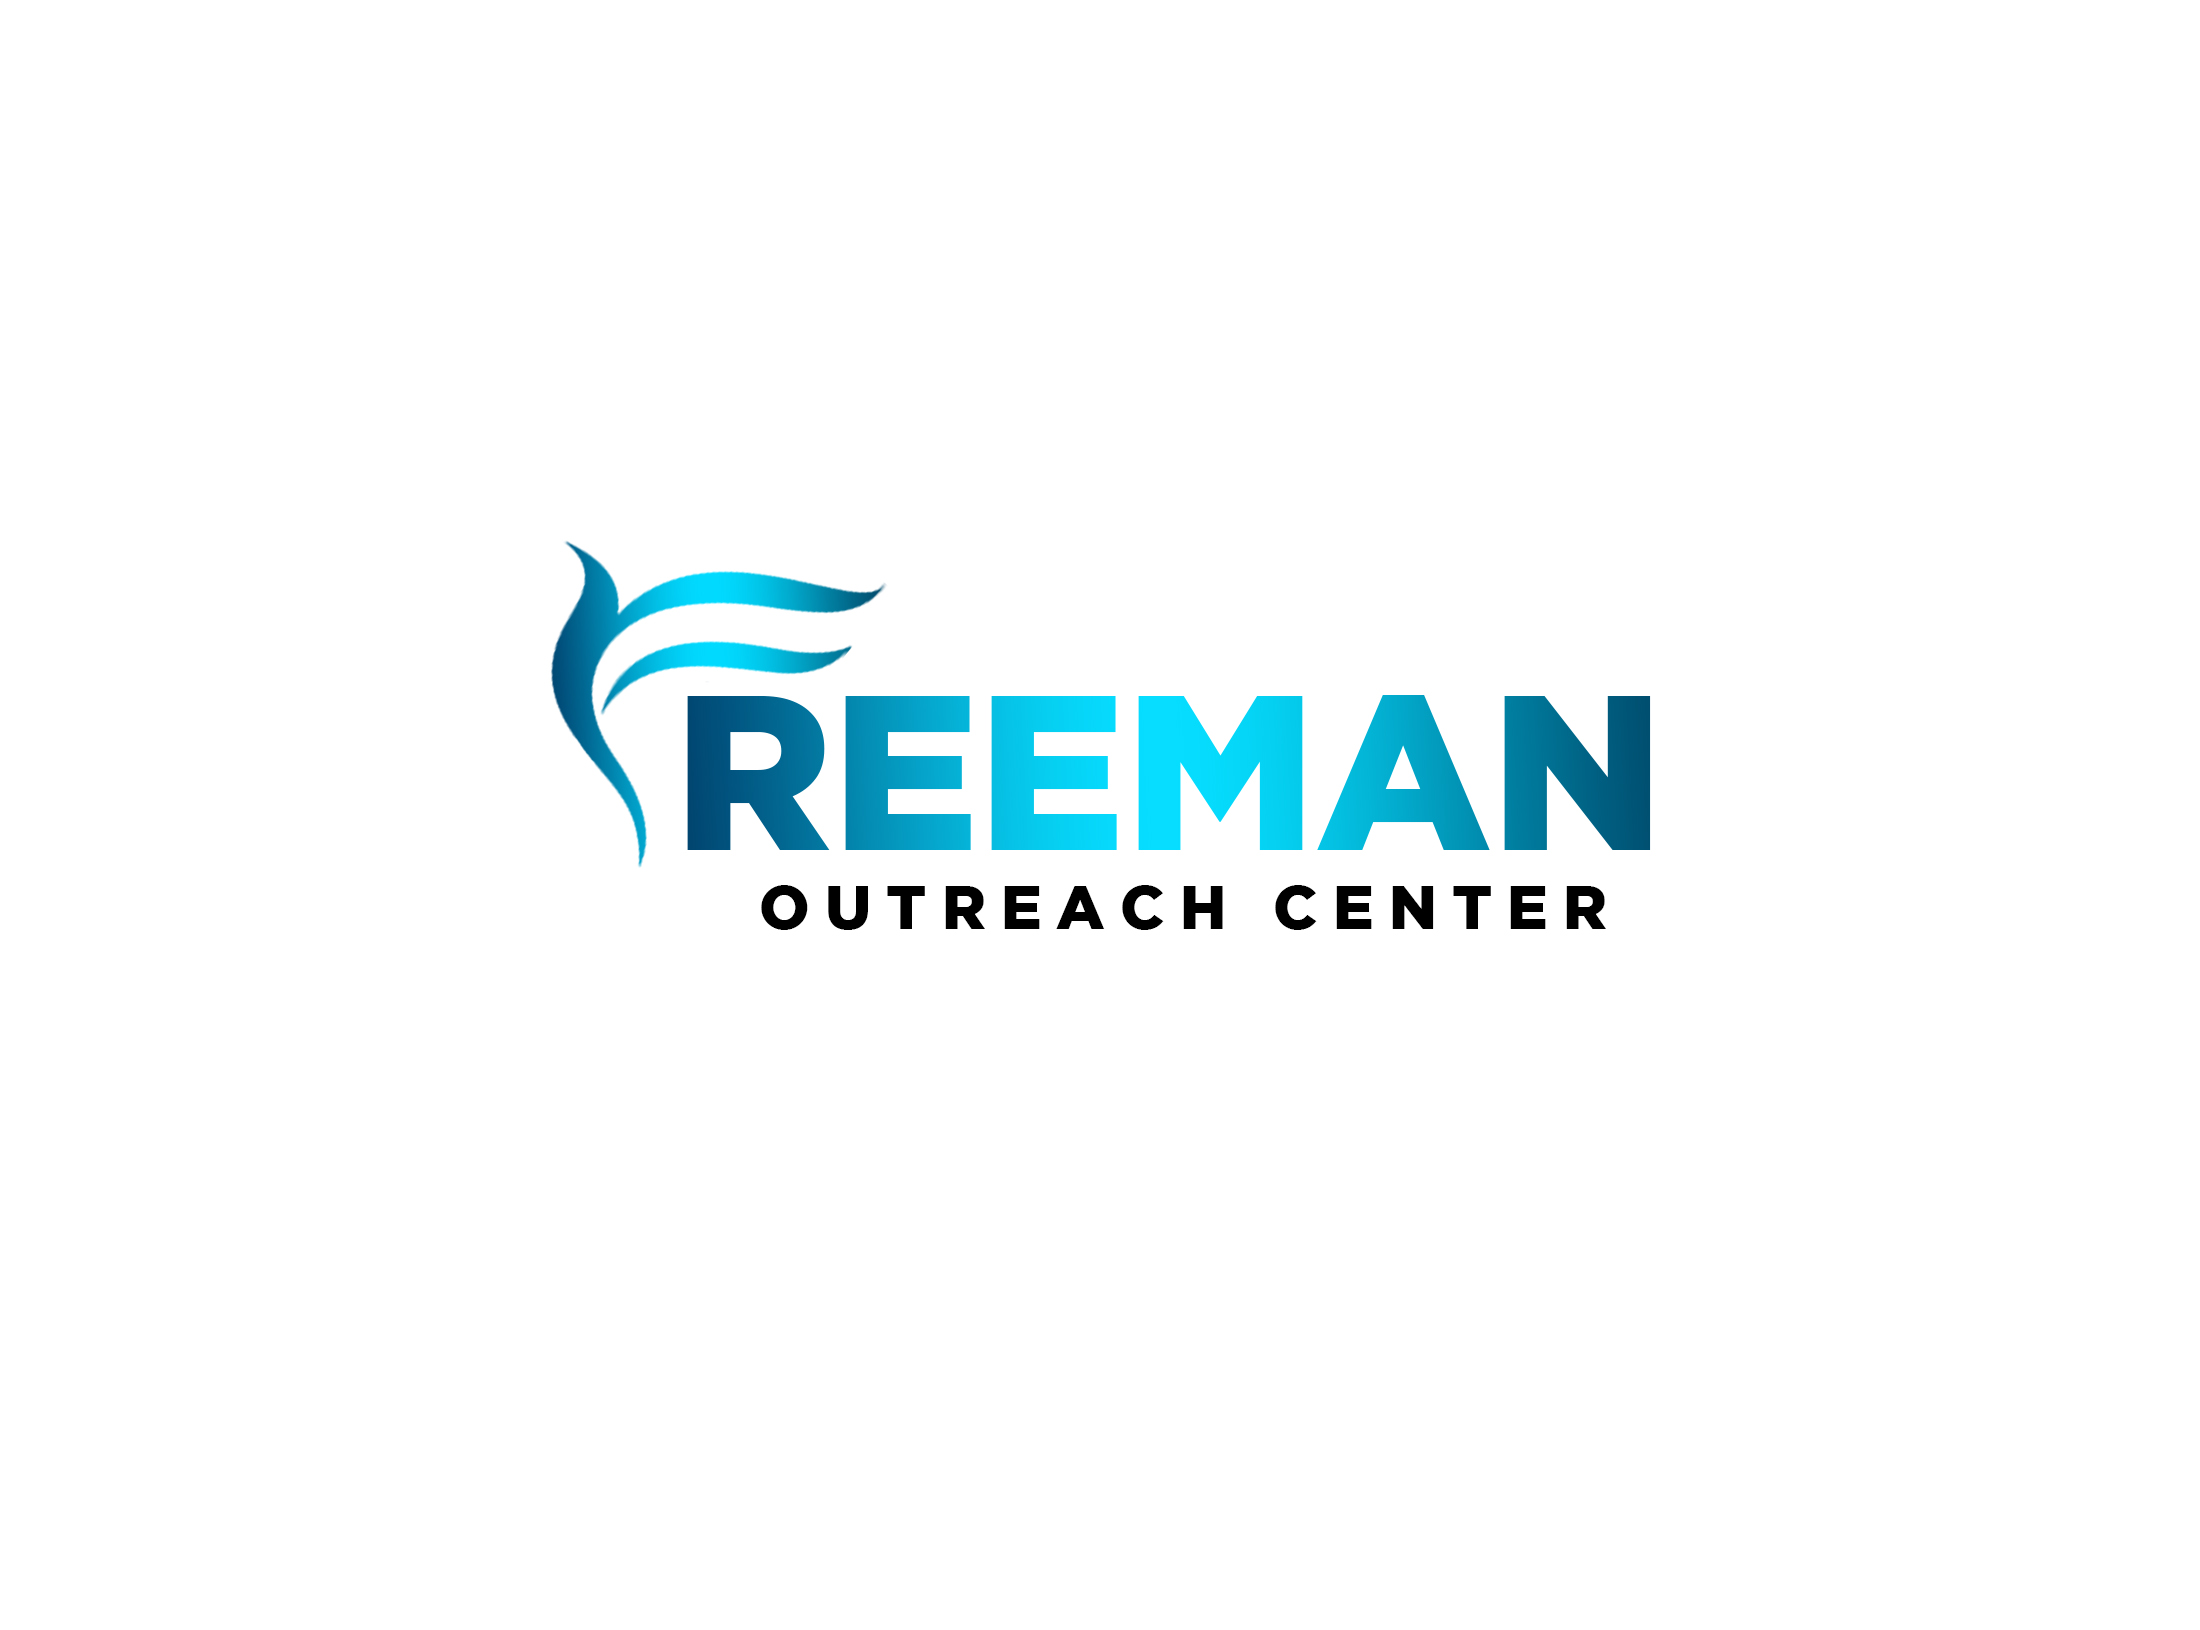 Freeman Outreach Center